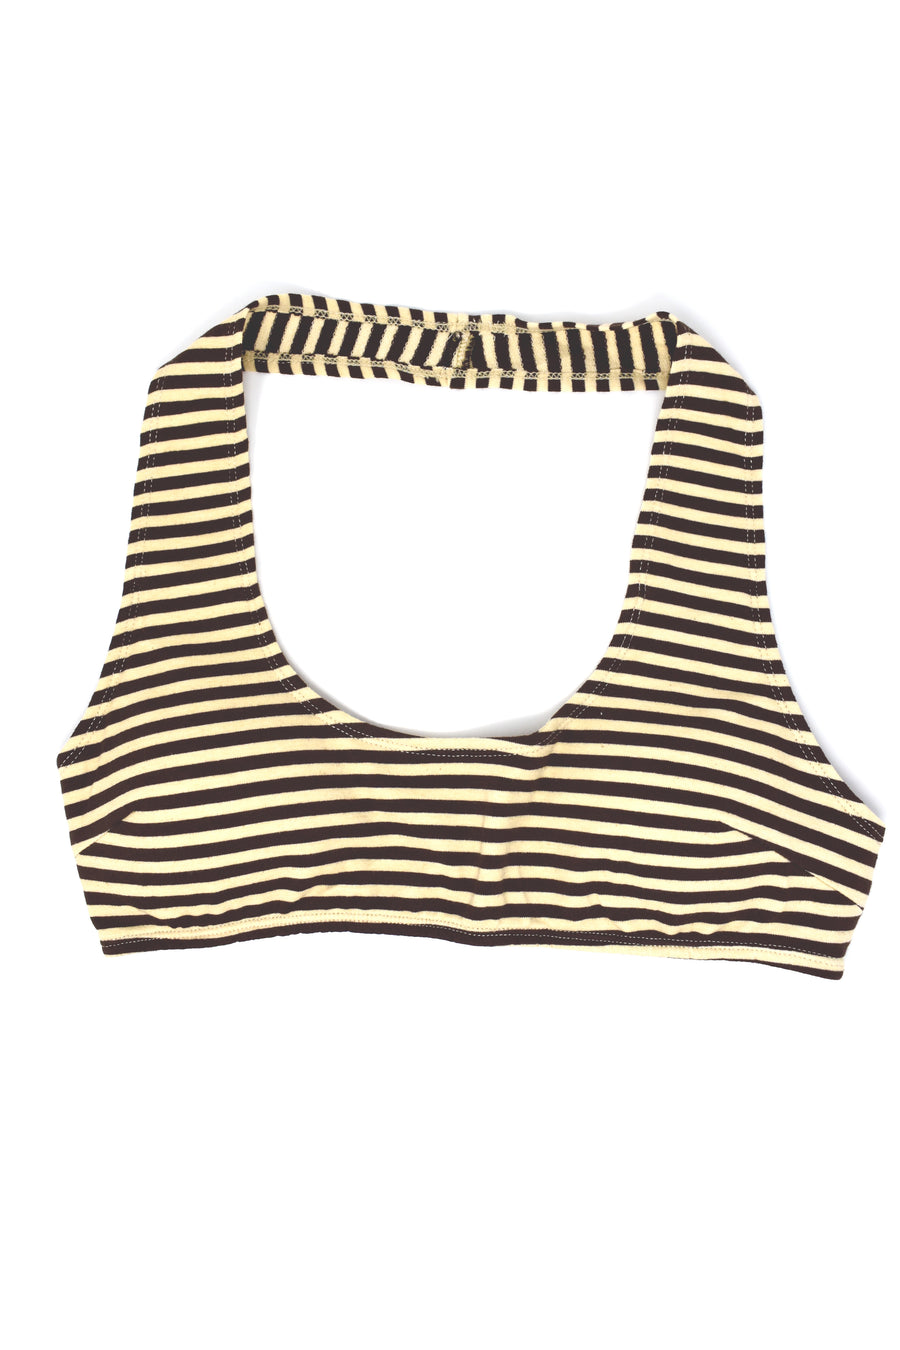 Cream/Brown Striped Halter Top